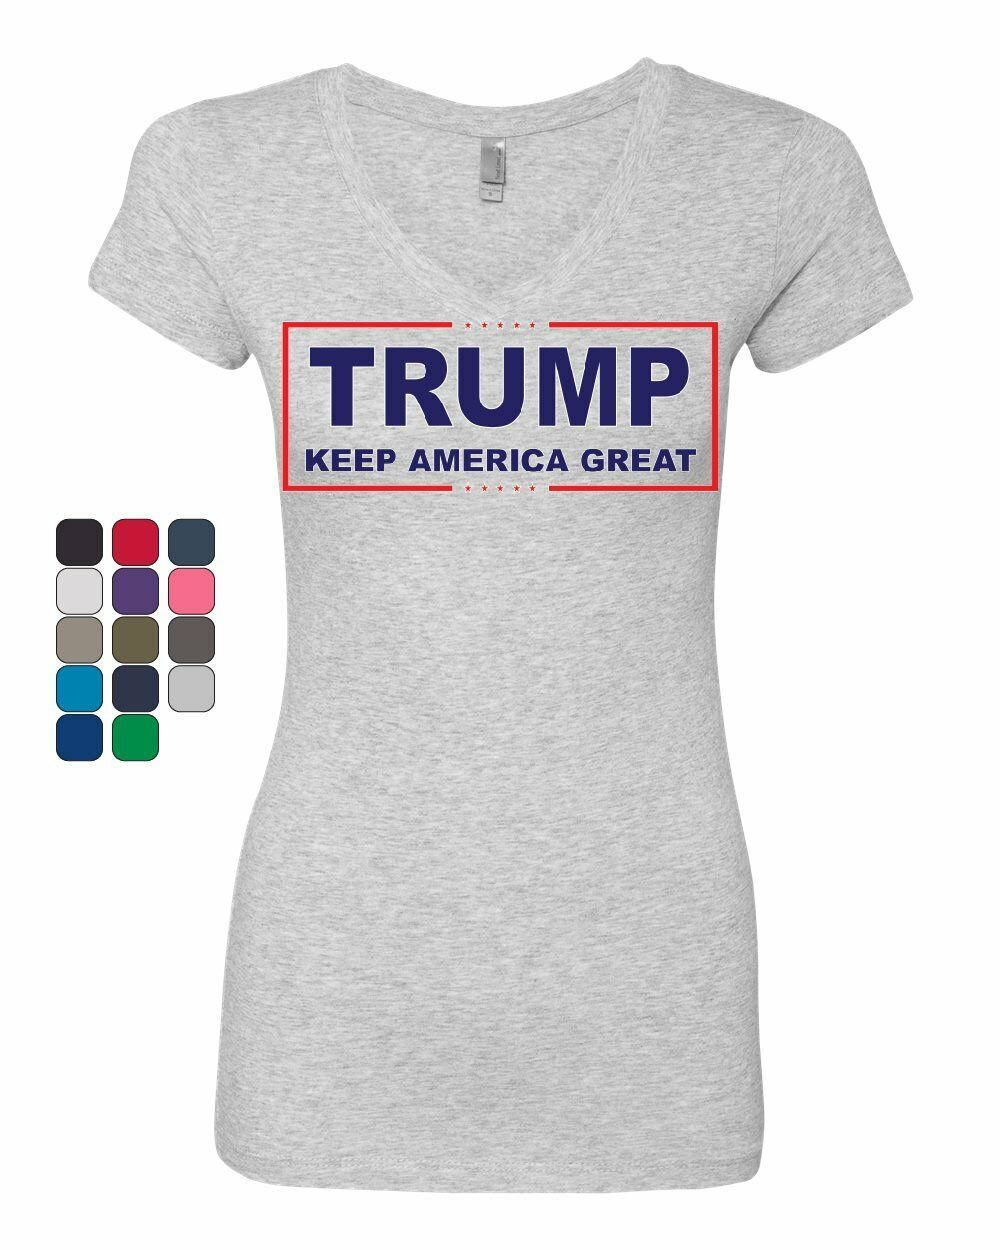 Primary image for Trump Keep America Great Women's V-Neck T-Shirt 2020 Election Republican POTUS